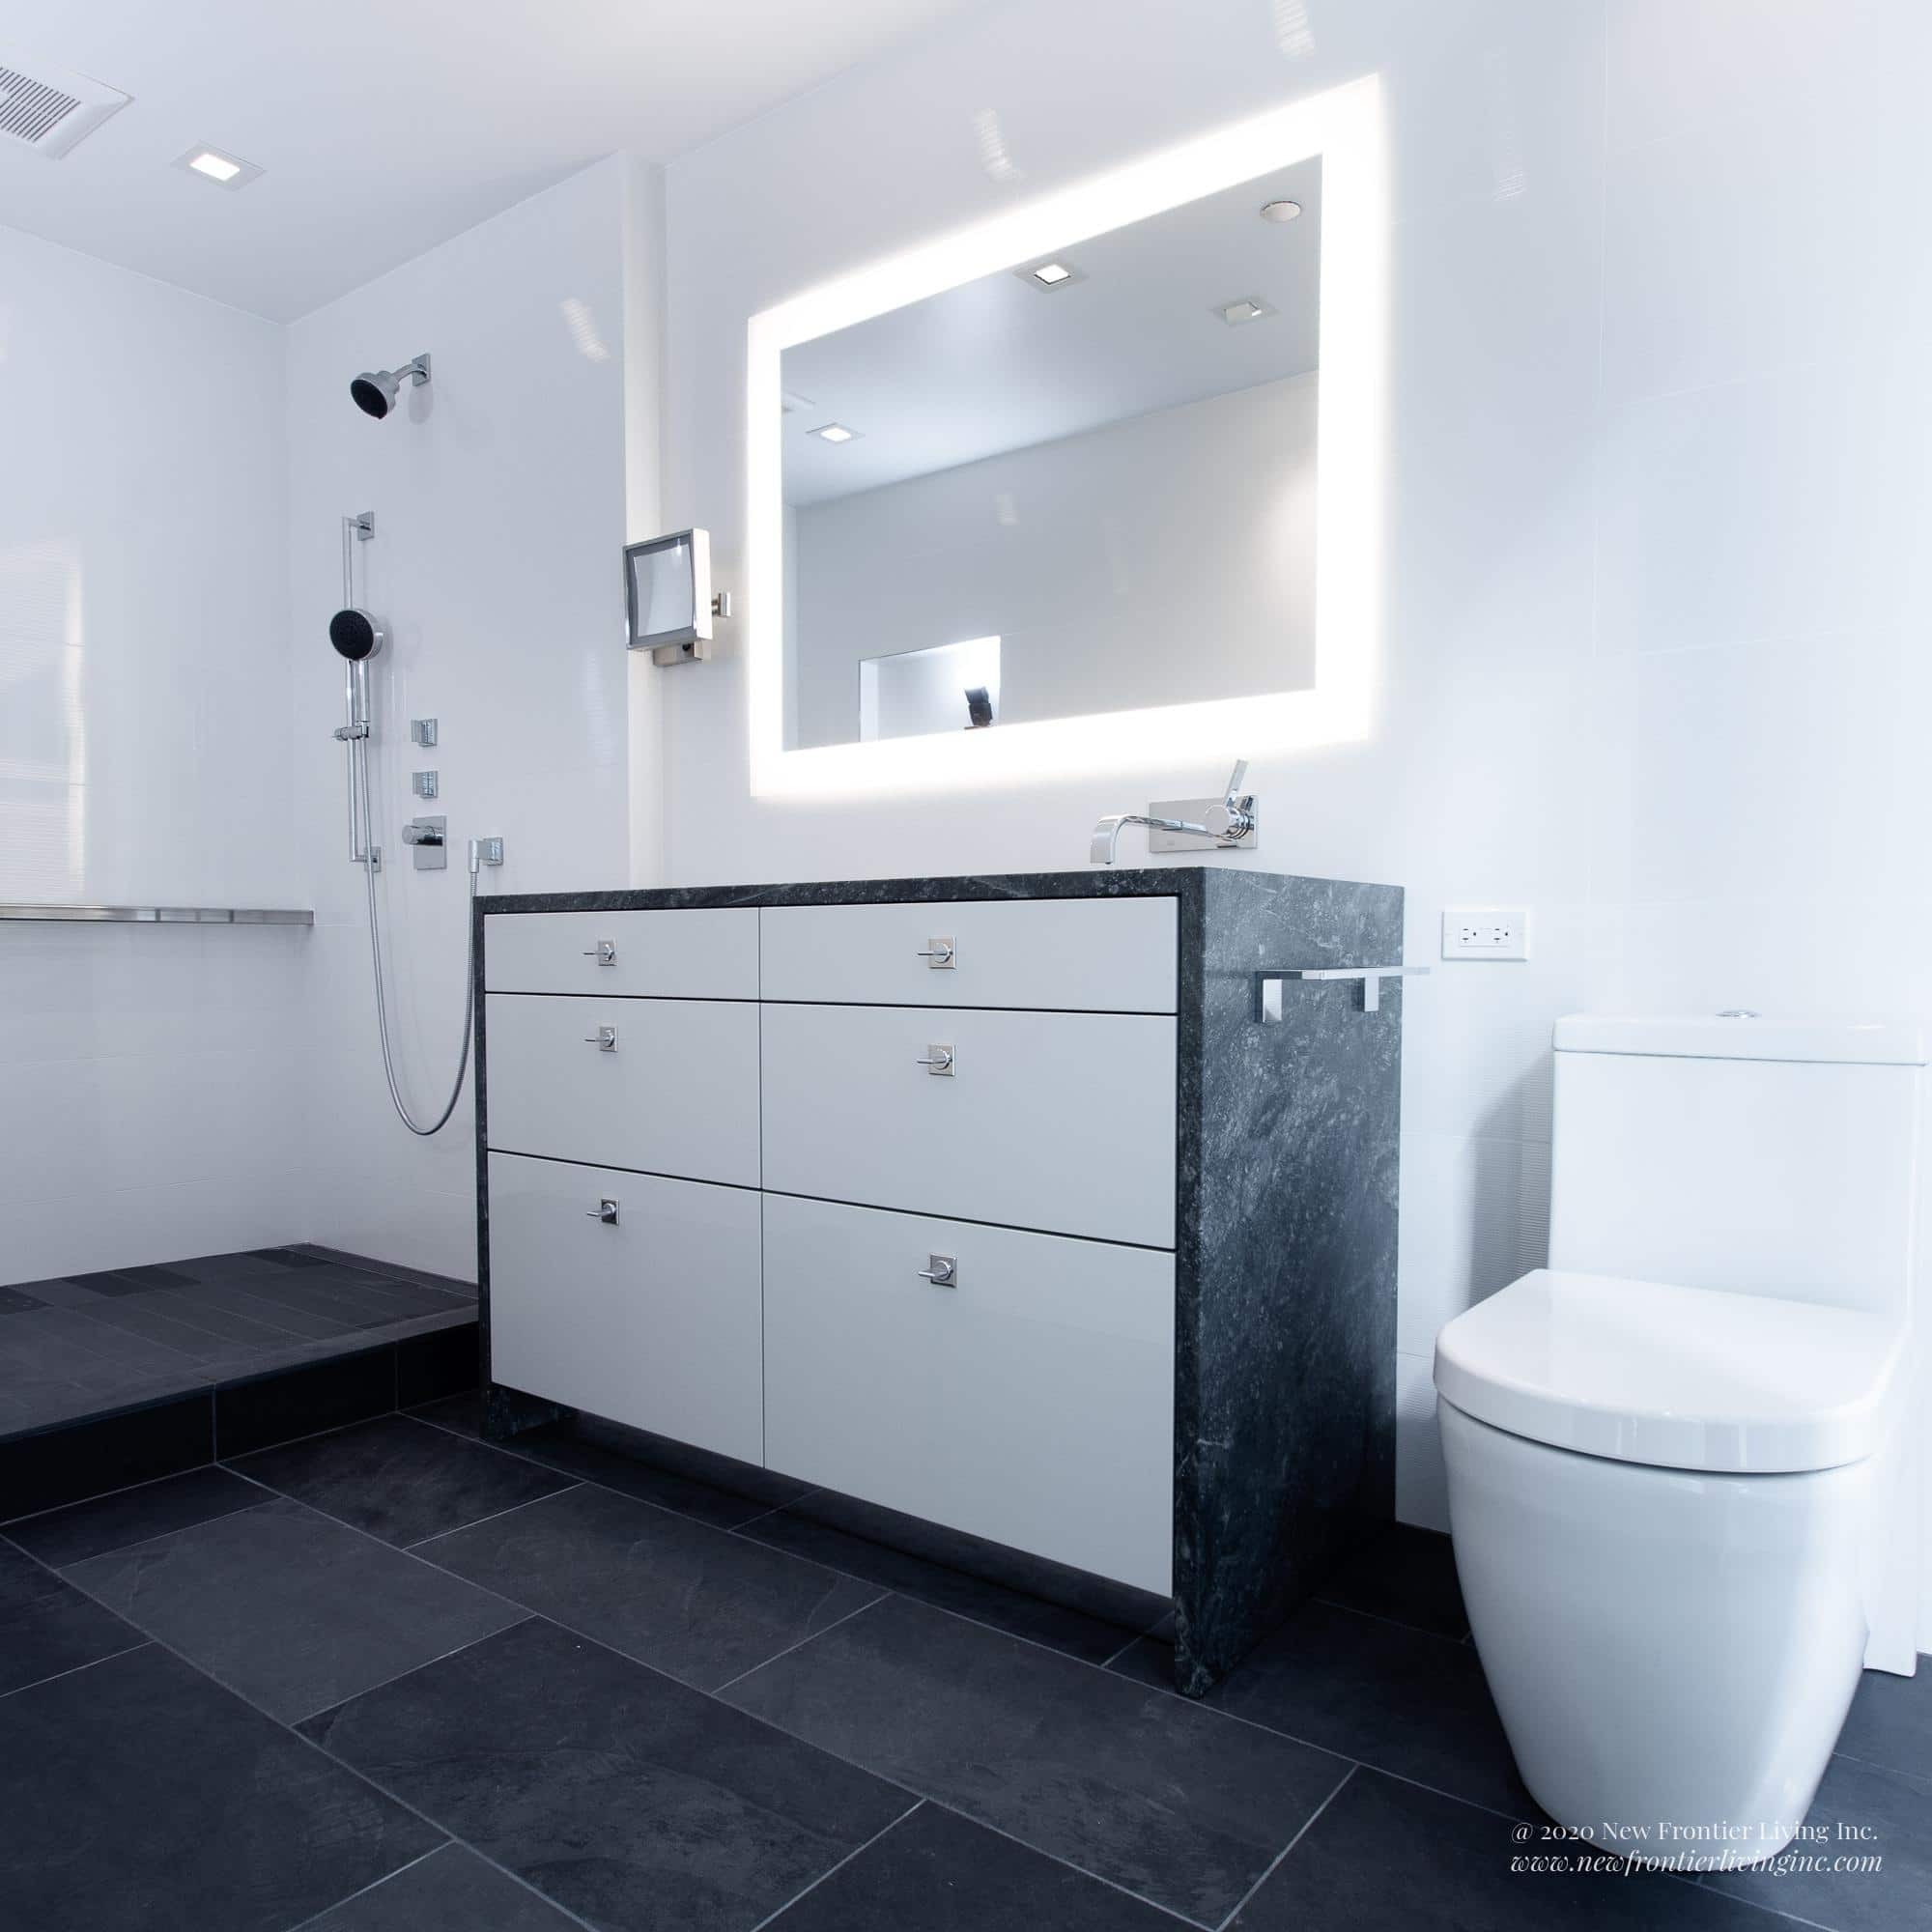 White and gray bathroom with walk-in shower, sink and vanity and LED lighted mirror in the middle and toilet on the right